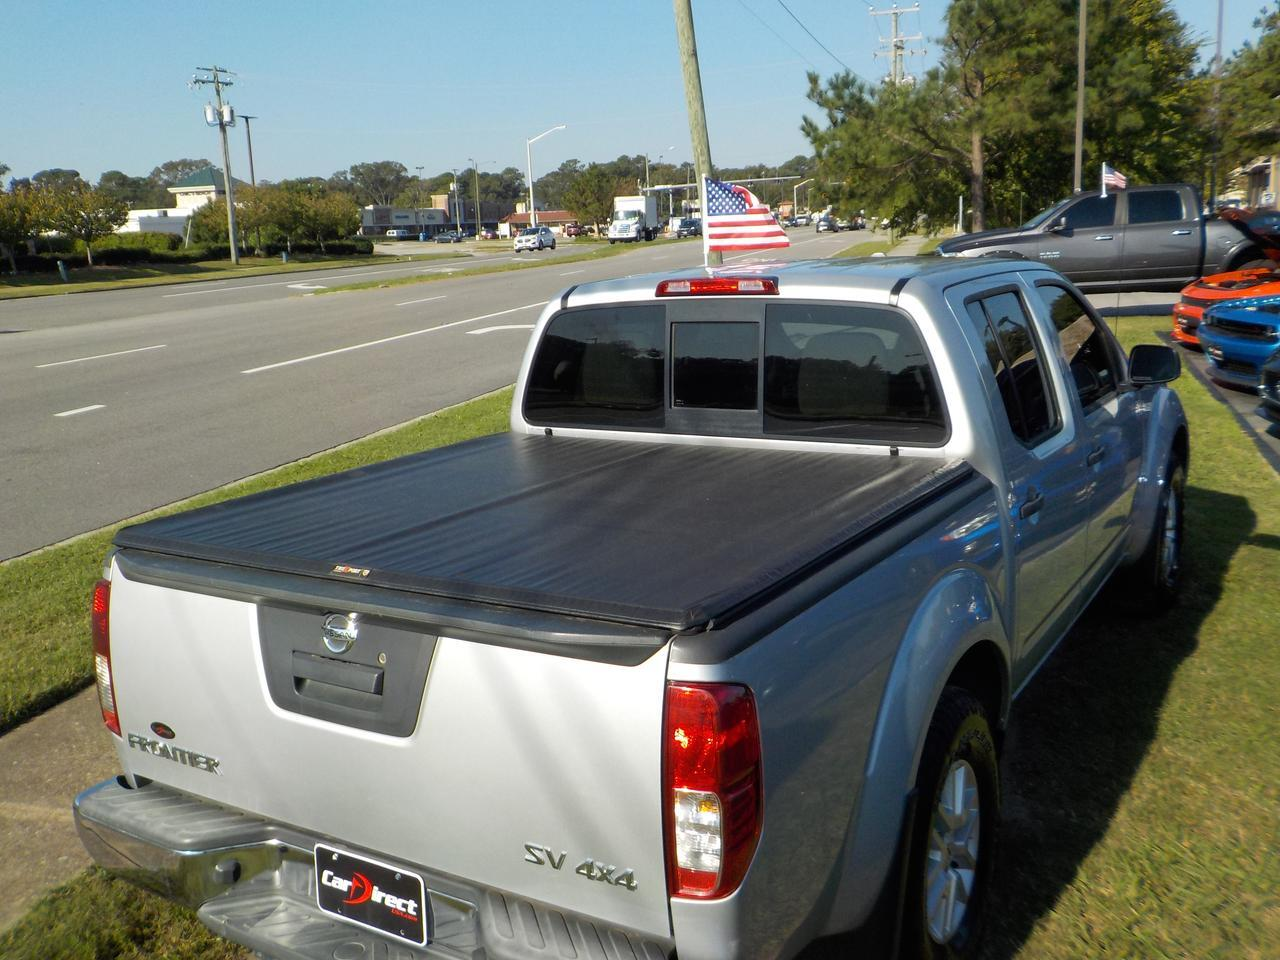 2016 NISSAN FRONTIER SV CREW CAB 4X4, TOW PACKAGE, BLUETOOTH, BED LINER, GREAT CONDITION, LOW MILES!! Virginia Beach VA